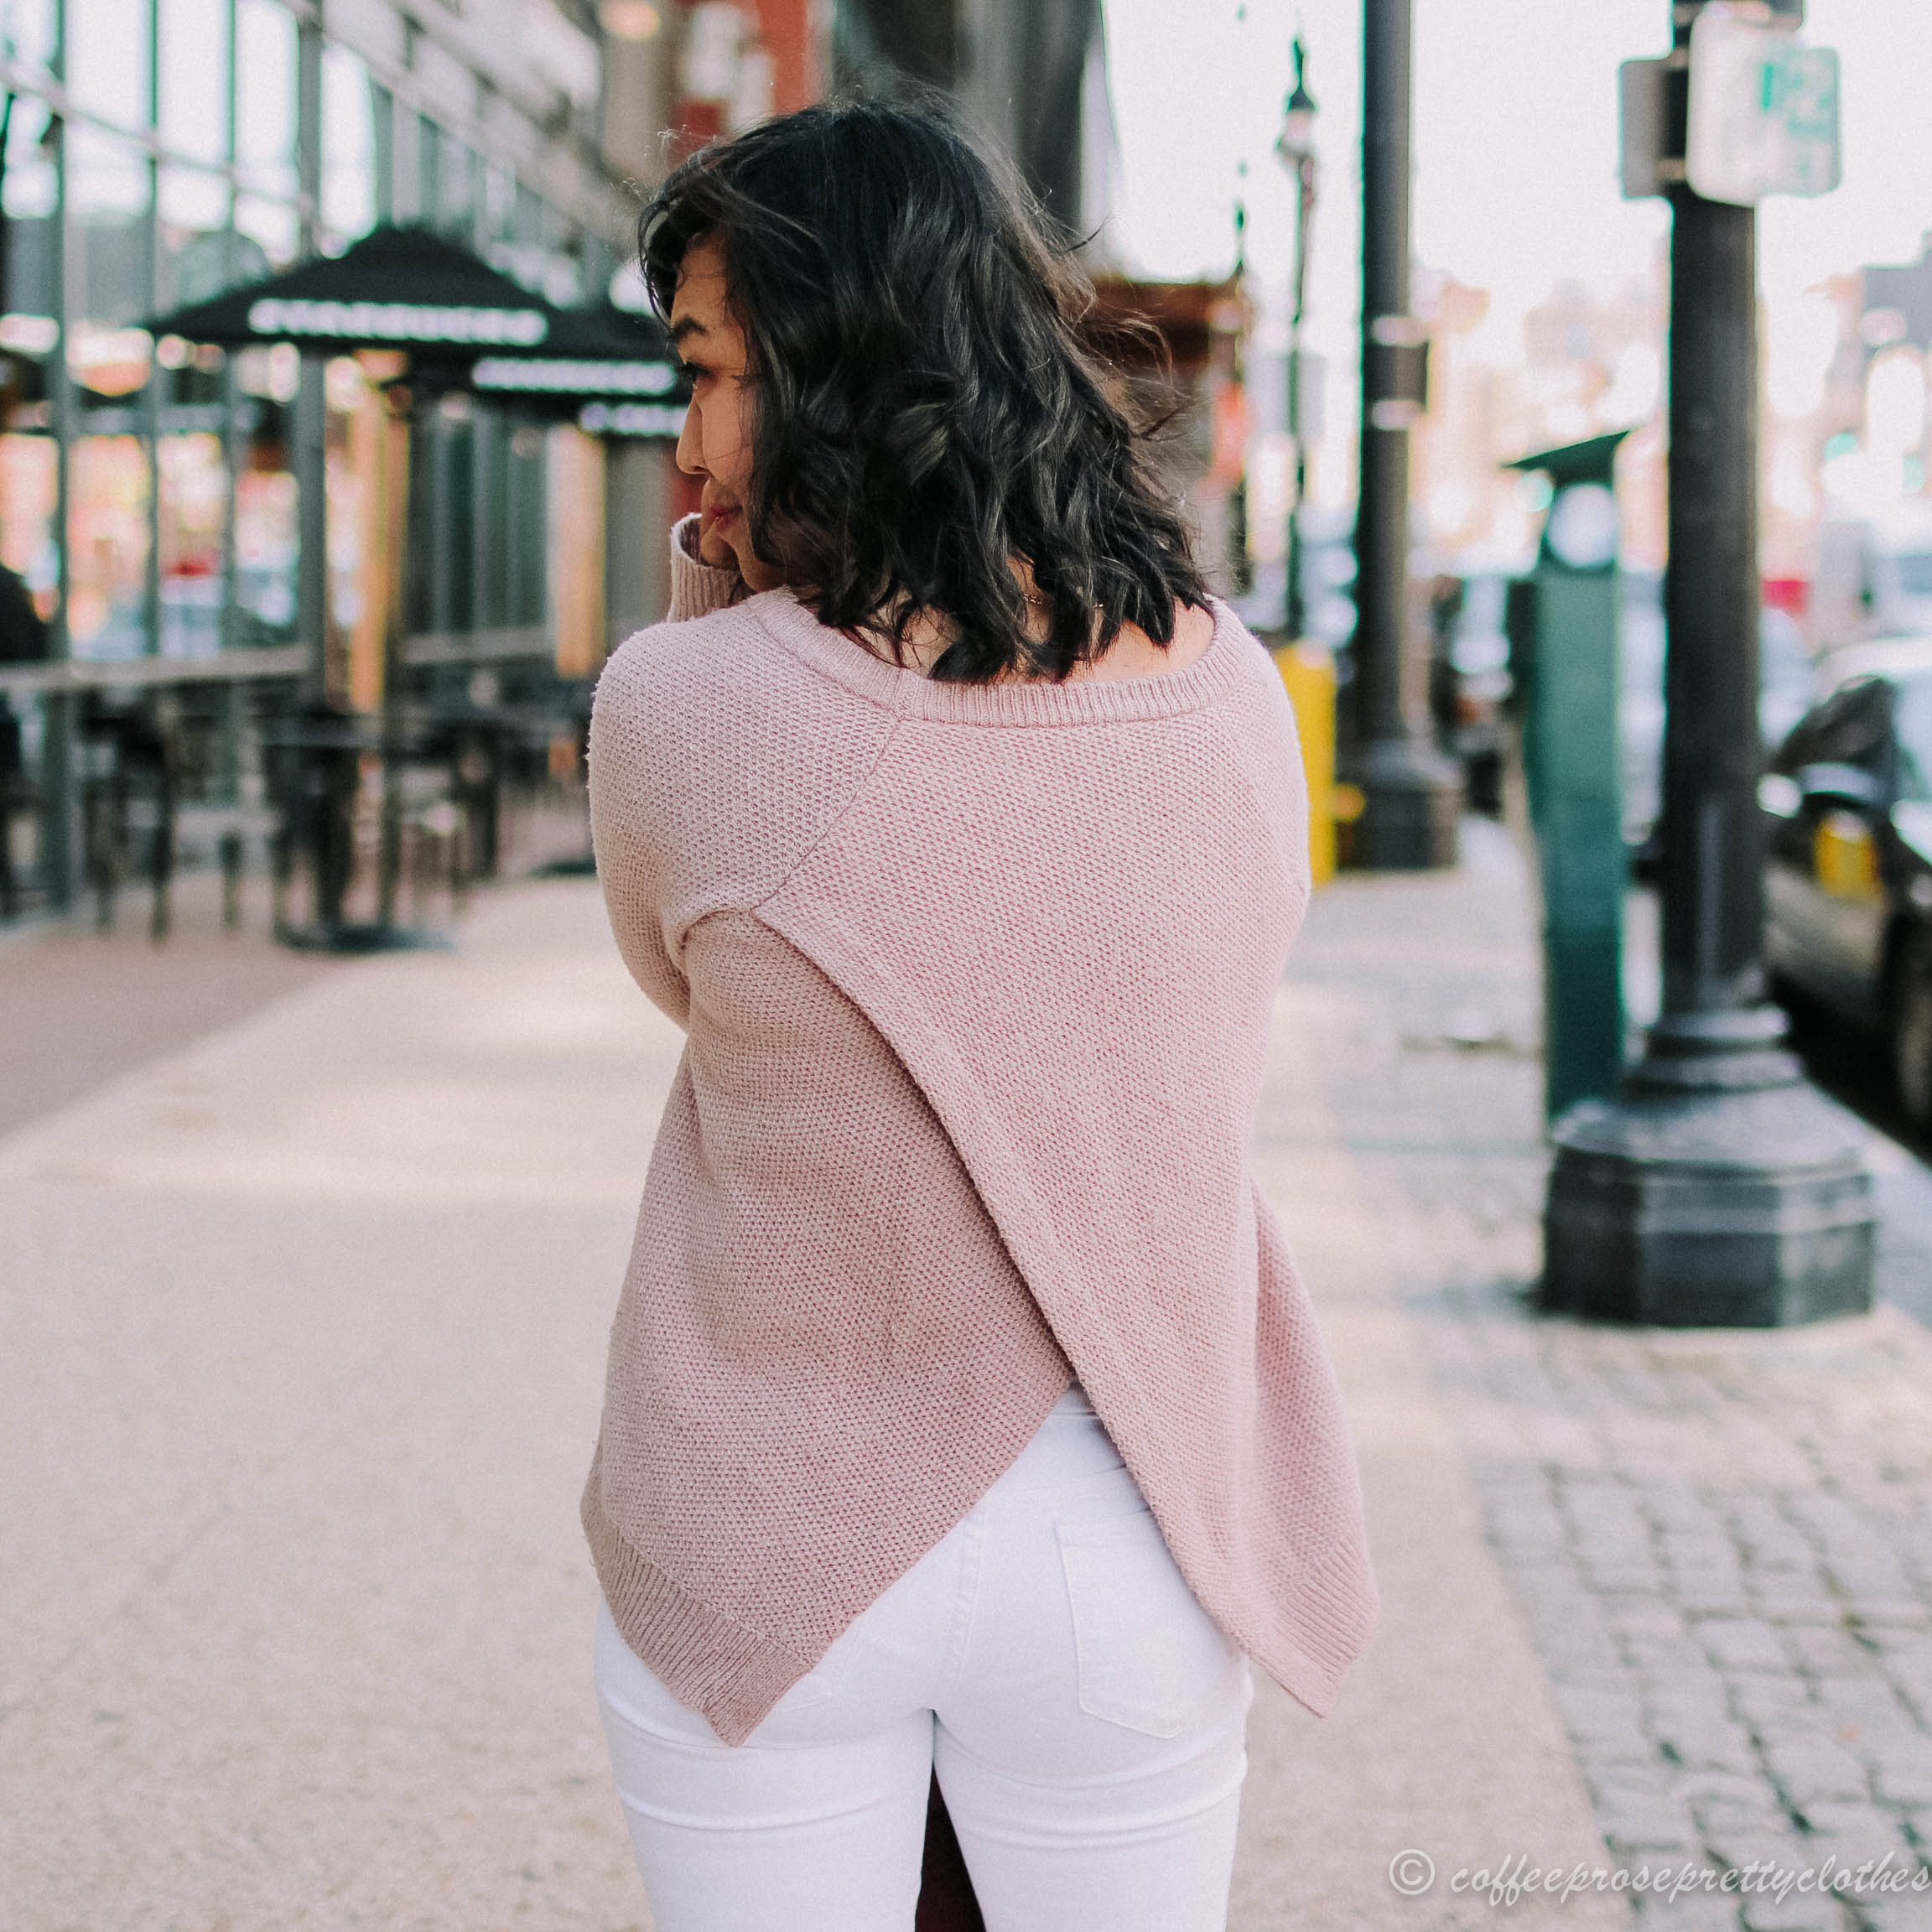 Madewell Cross Back Sweater, J.Crew White Jeans, and Madewell the Gemma mules